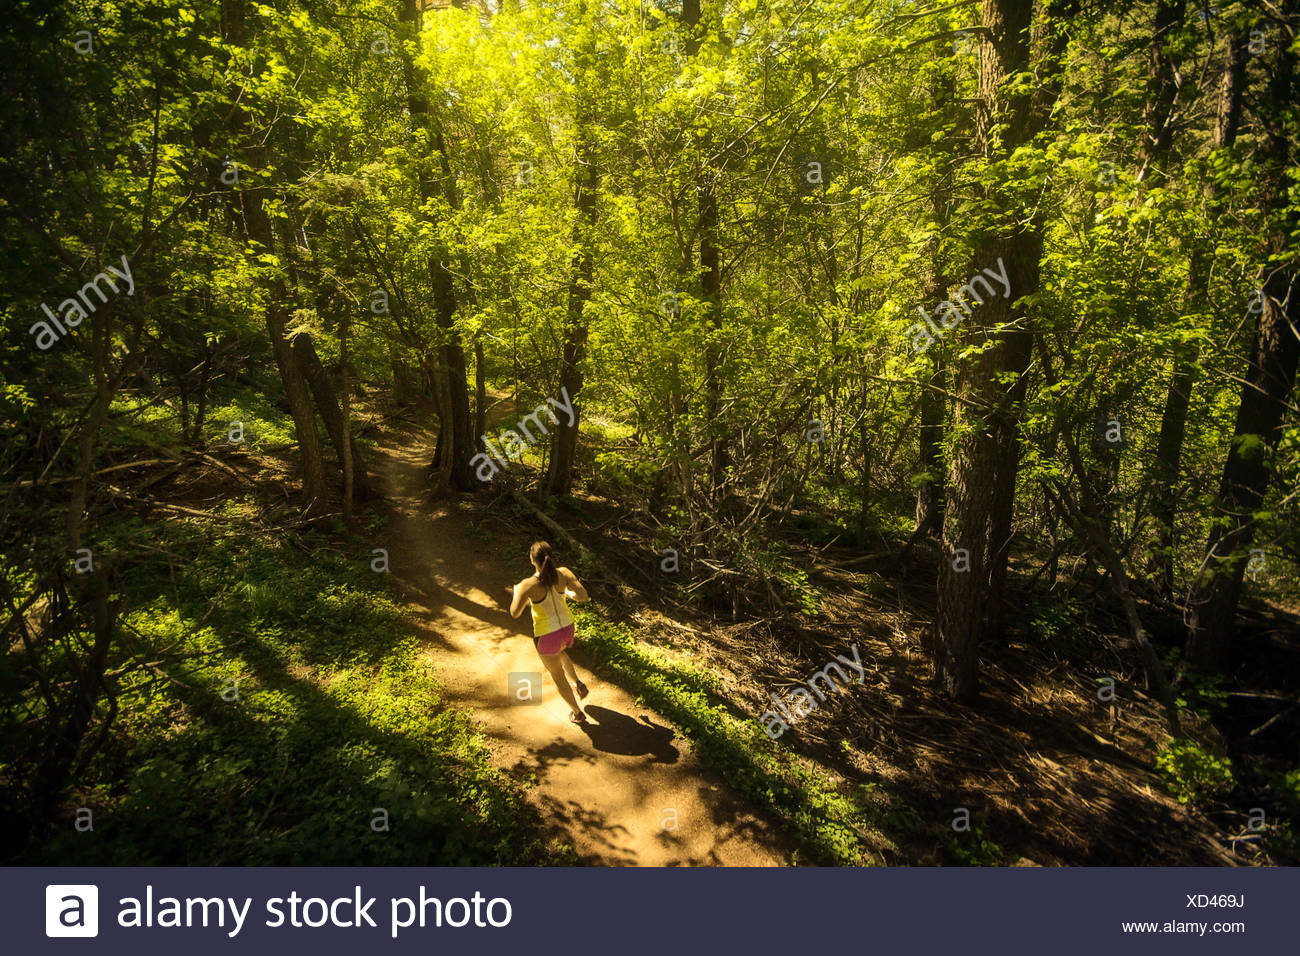 USA, Colorado, Golden, femme trail running through forest Photo Stock